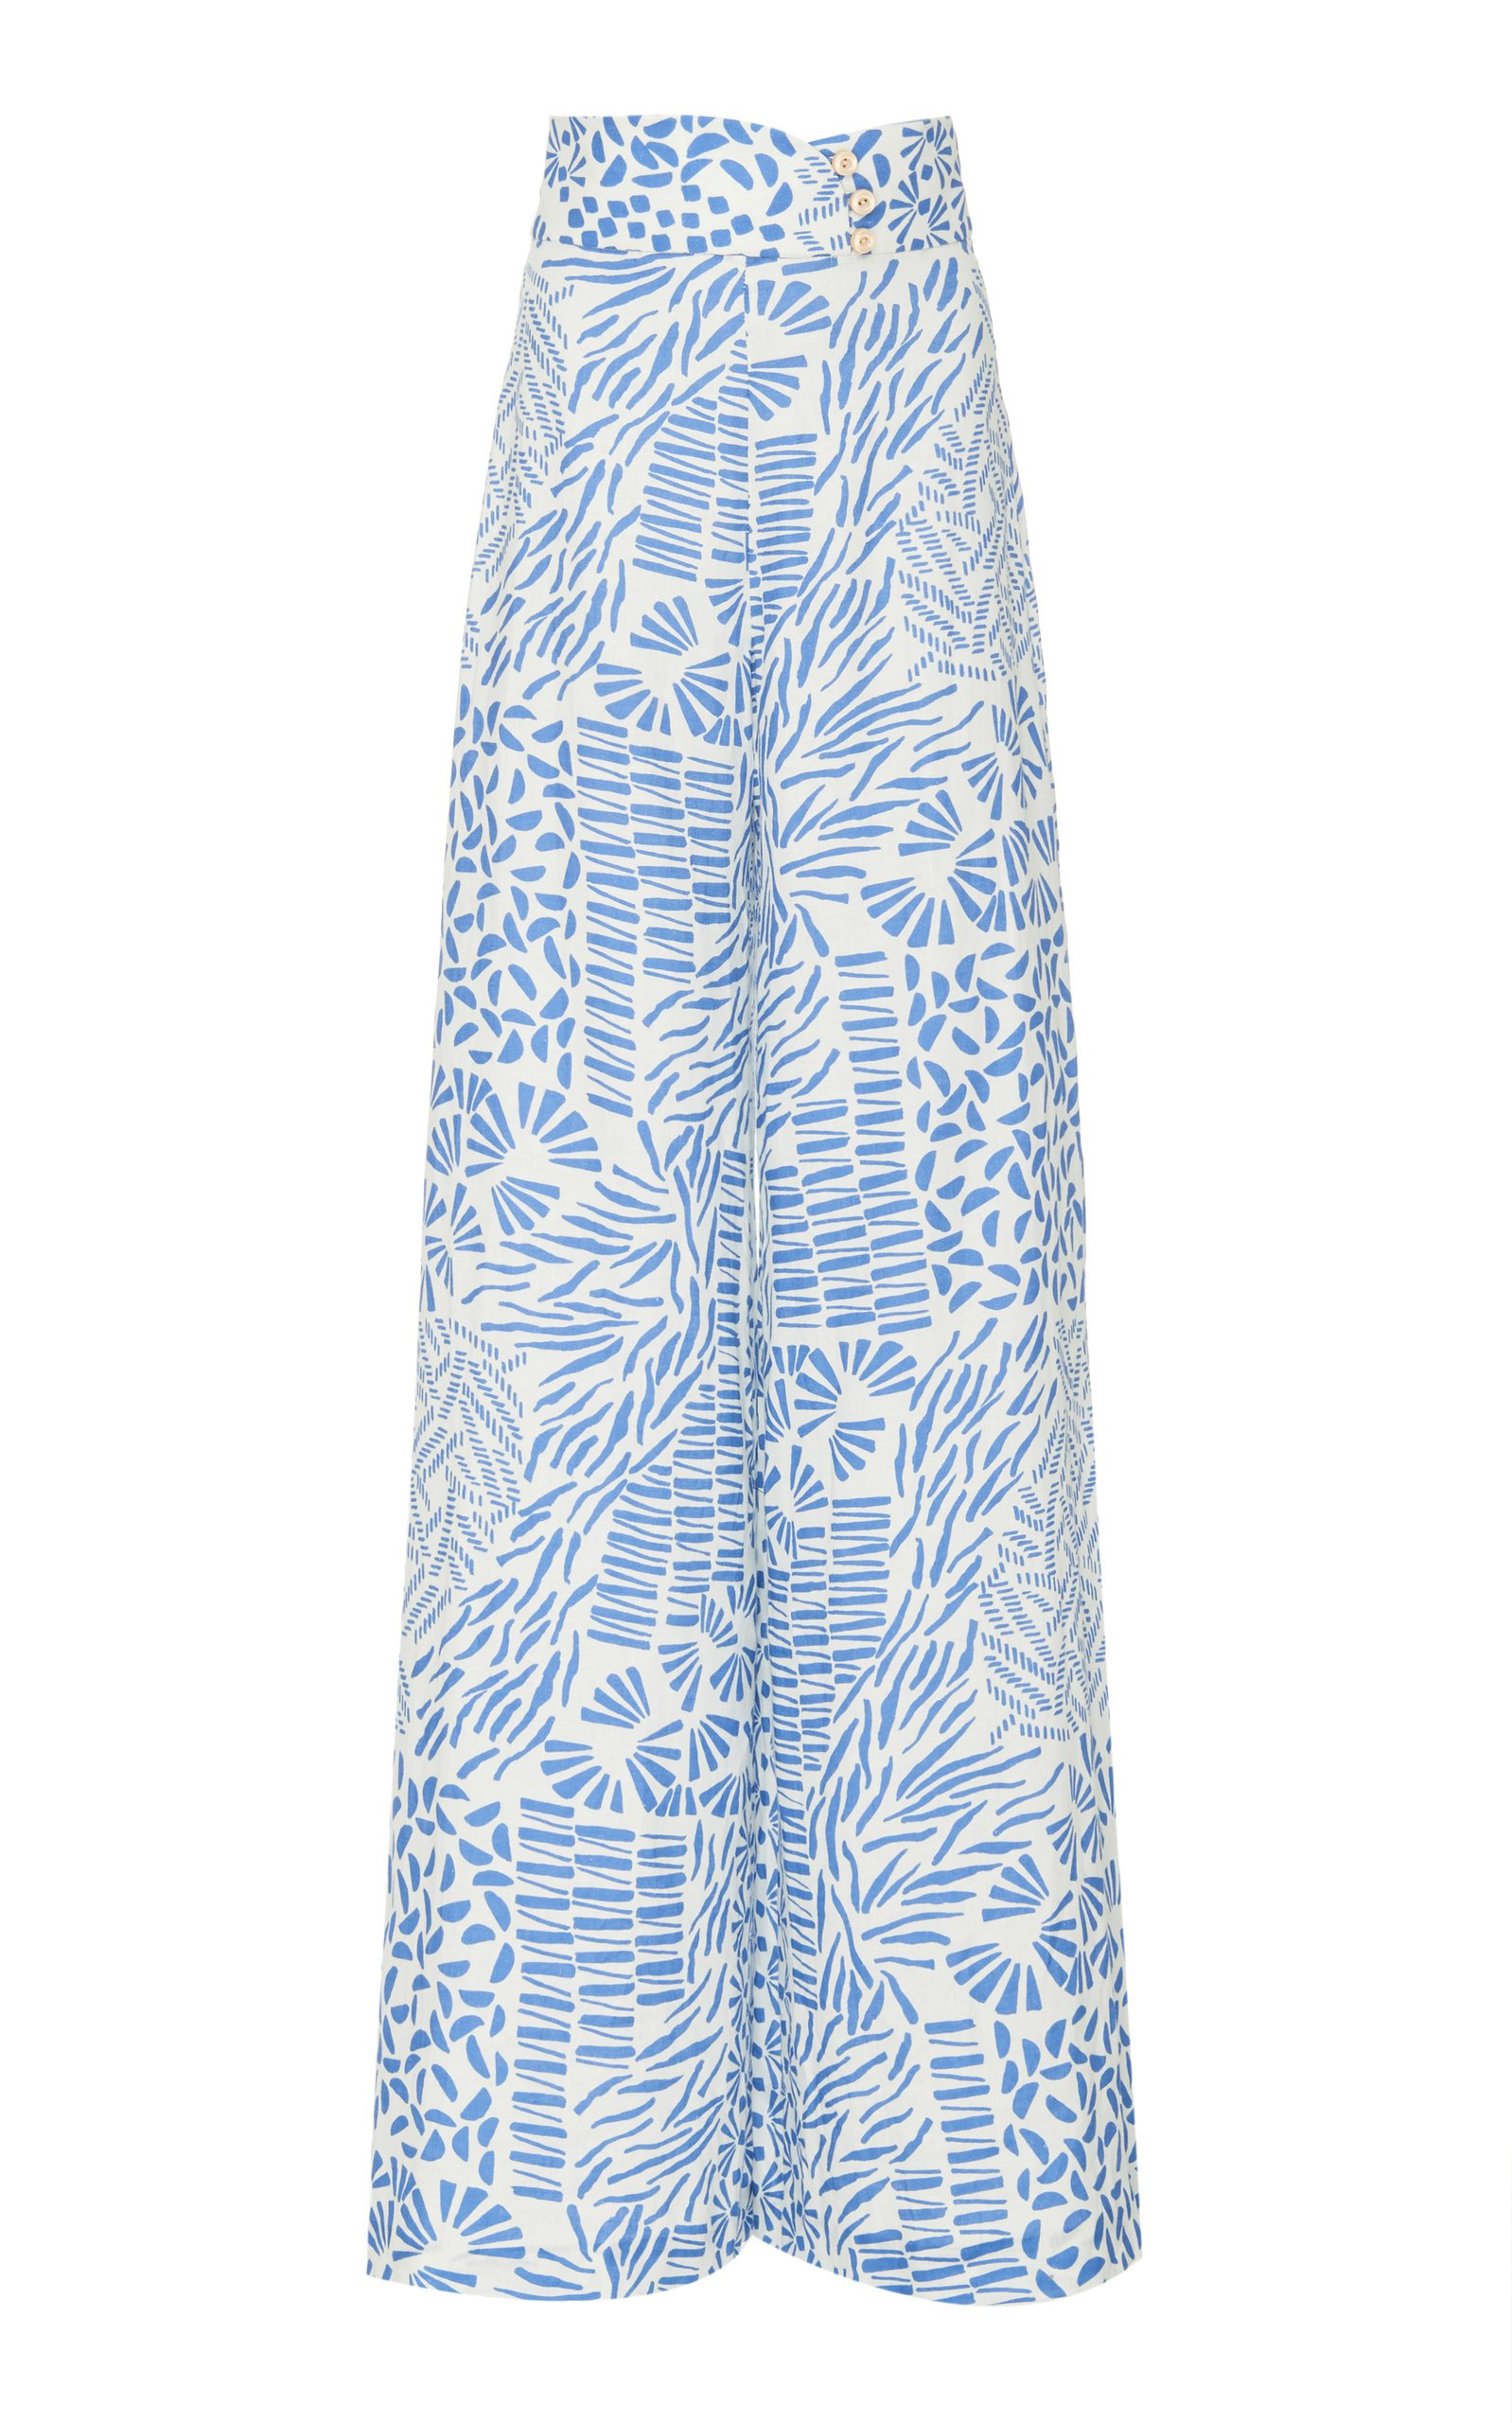 Alexis Neassa High Waisted Cotton Flare Pant Size: L